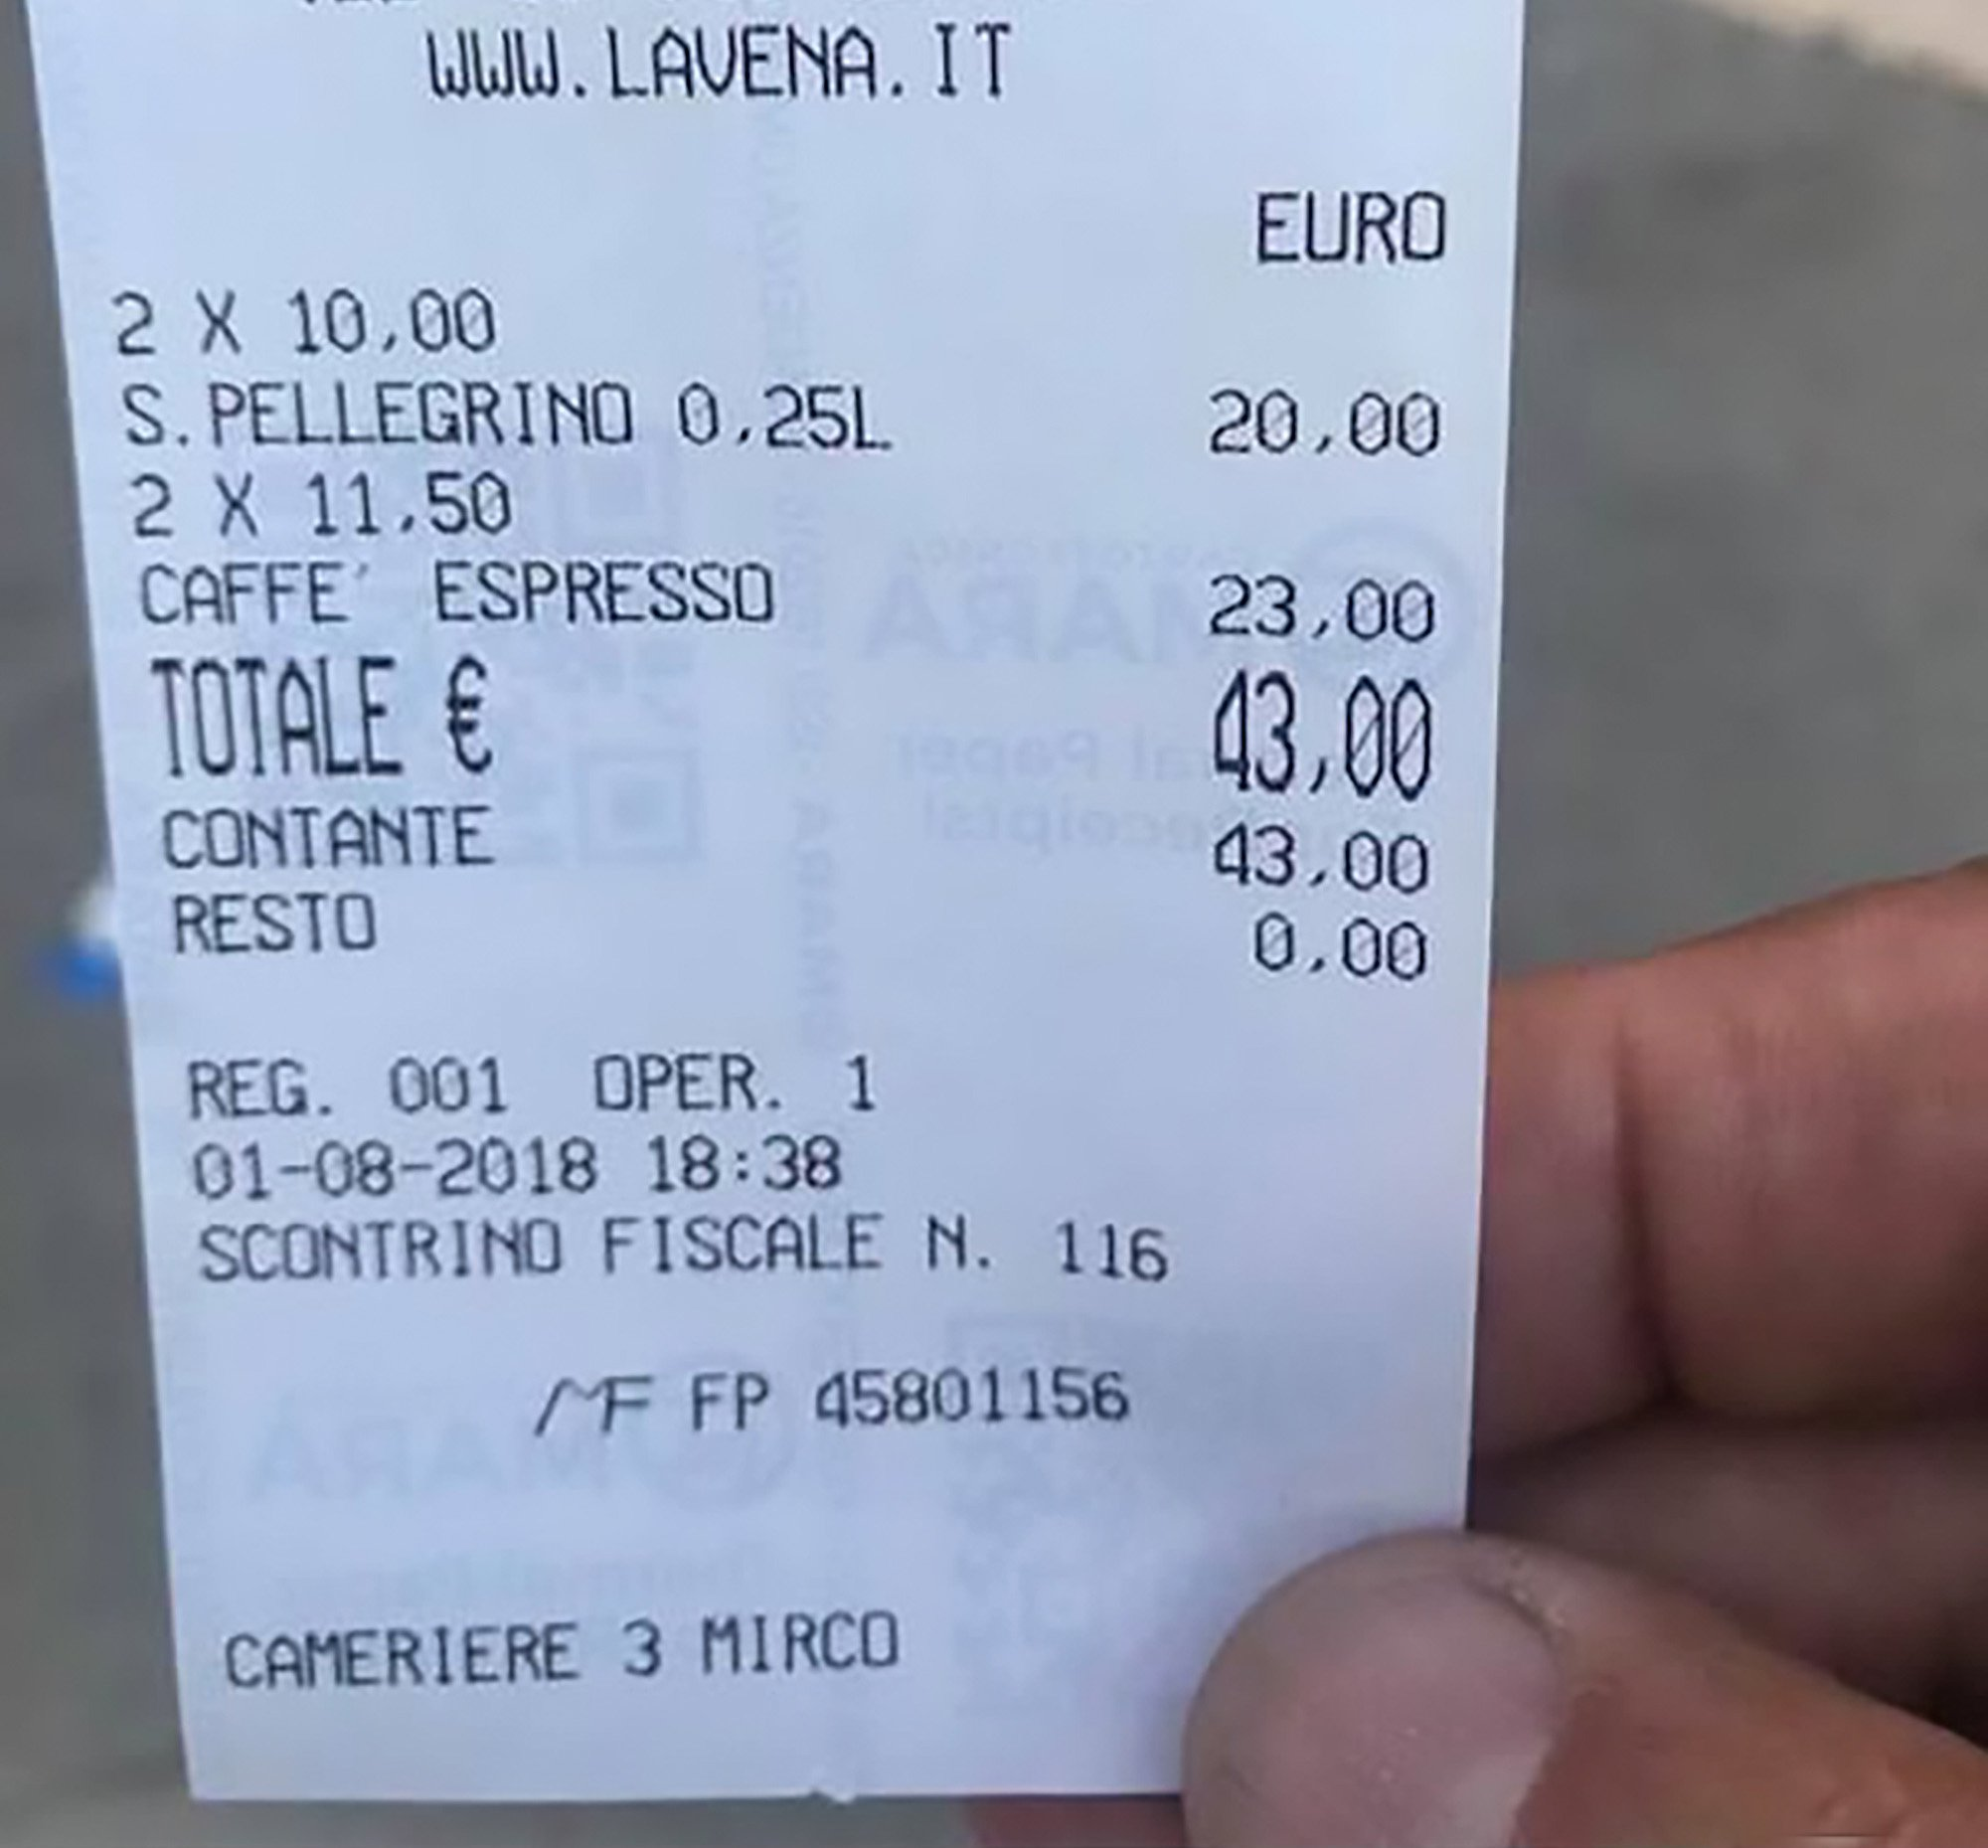 "Pic Shows: The bill of Venice bar;A group of tourists were left stunned when they were charged 43 EUR (38.40 GBP) for two cups of coffee and two bottles of water.The astronomical bill was charged by the Caffe Lavena on the iconic St Mark's Square in the city of Venice, north-eastern Italy.Tourist Juan Carlos Bustamente, 62, was so shocked that he shared a photo of the itemised bill on social media.It showed that he had been charged 11.50 EUR (10.30 GBP) for each cup of coffee, and 10 EUR (8.90 GBP) for each 25 cl bottle of water.The Caffe Lavena enjoys one of the prime spots in Venice, one of the world's most popular tourist cities, but Mr Bustamente was still taken aback by the size of the bill.He said: ""I don't know what you think but 43 euros for two coffees and two bottles of water!""Many online commentators were shocked, including netizen 'Vincenzo Cuius Iuculano' who said: ""This is theft - shame!!!""However, a spokesman for the Caffe Lavena was unrepentant and said that customers paid a premium to sit outside on St Mark's Square.He said: ""People get annoyed when the bill arrives because they do not listen when we hand them the menu even though it states clearly enough that prices are higher to sit outside. They just wave us away and if we insist they get irritated.""If they just want a coffee they can have it at the bar for 1.25 EUR. If they want to sit outside and enjoy the music of the orchestra, look at the bell tower and the Basilica of St Mark???s, then they are paying for an entirely different experience.""Venice, which is situated across a group of 118 small islands, is regarded as one of the world's most beautiful cities.Last month, a group of tourists were shocked after they were forced to pay 52 euros (46 GBP) for four soft drinks in a bar in the resort town of San Antonio on the Spanish party island of Ibiza."